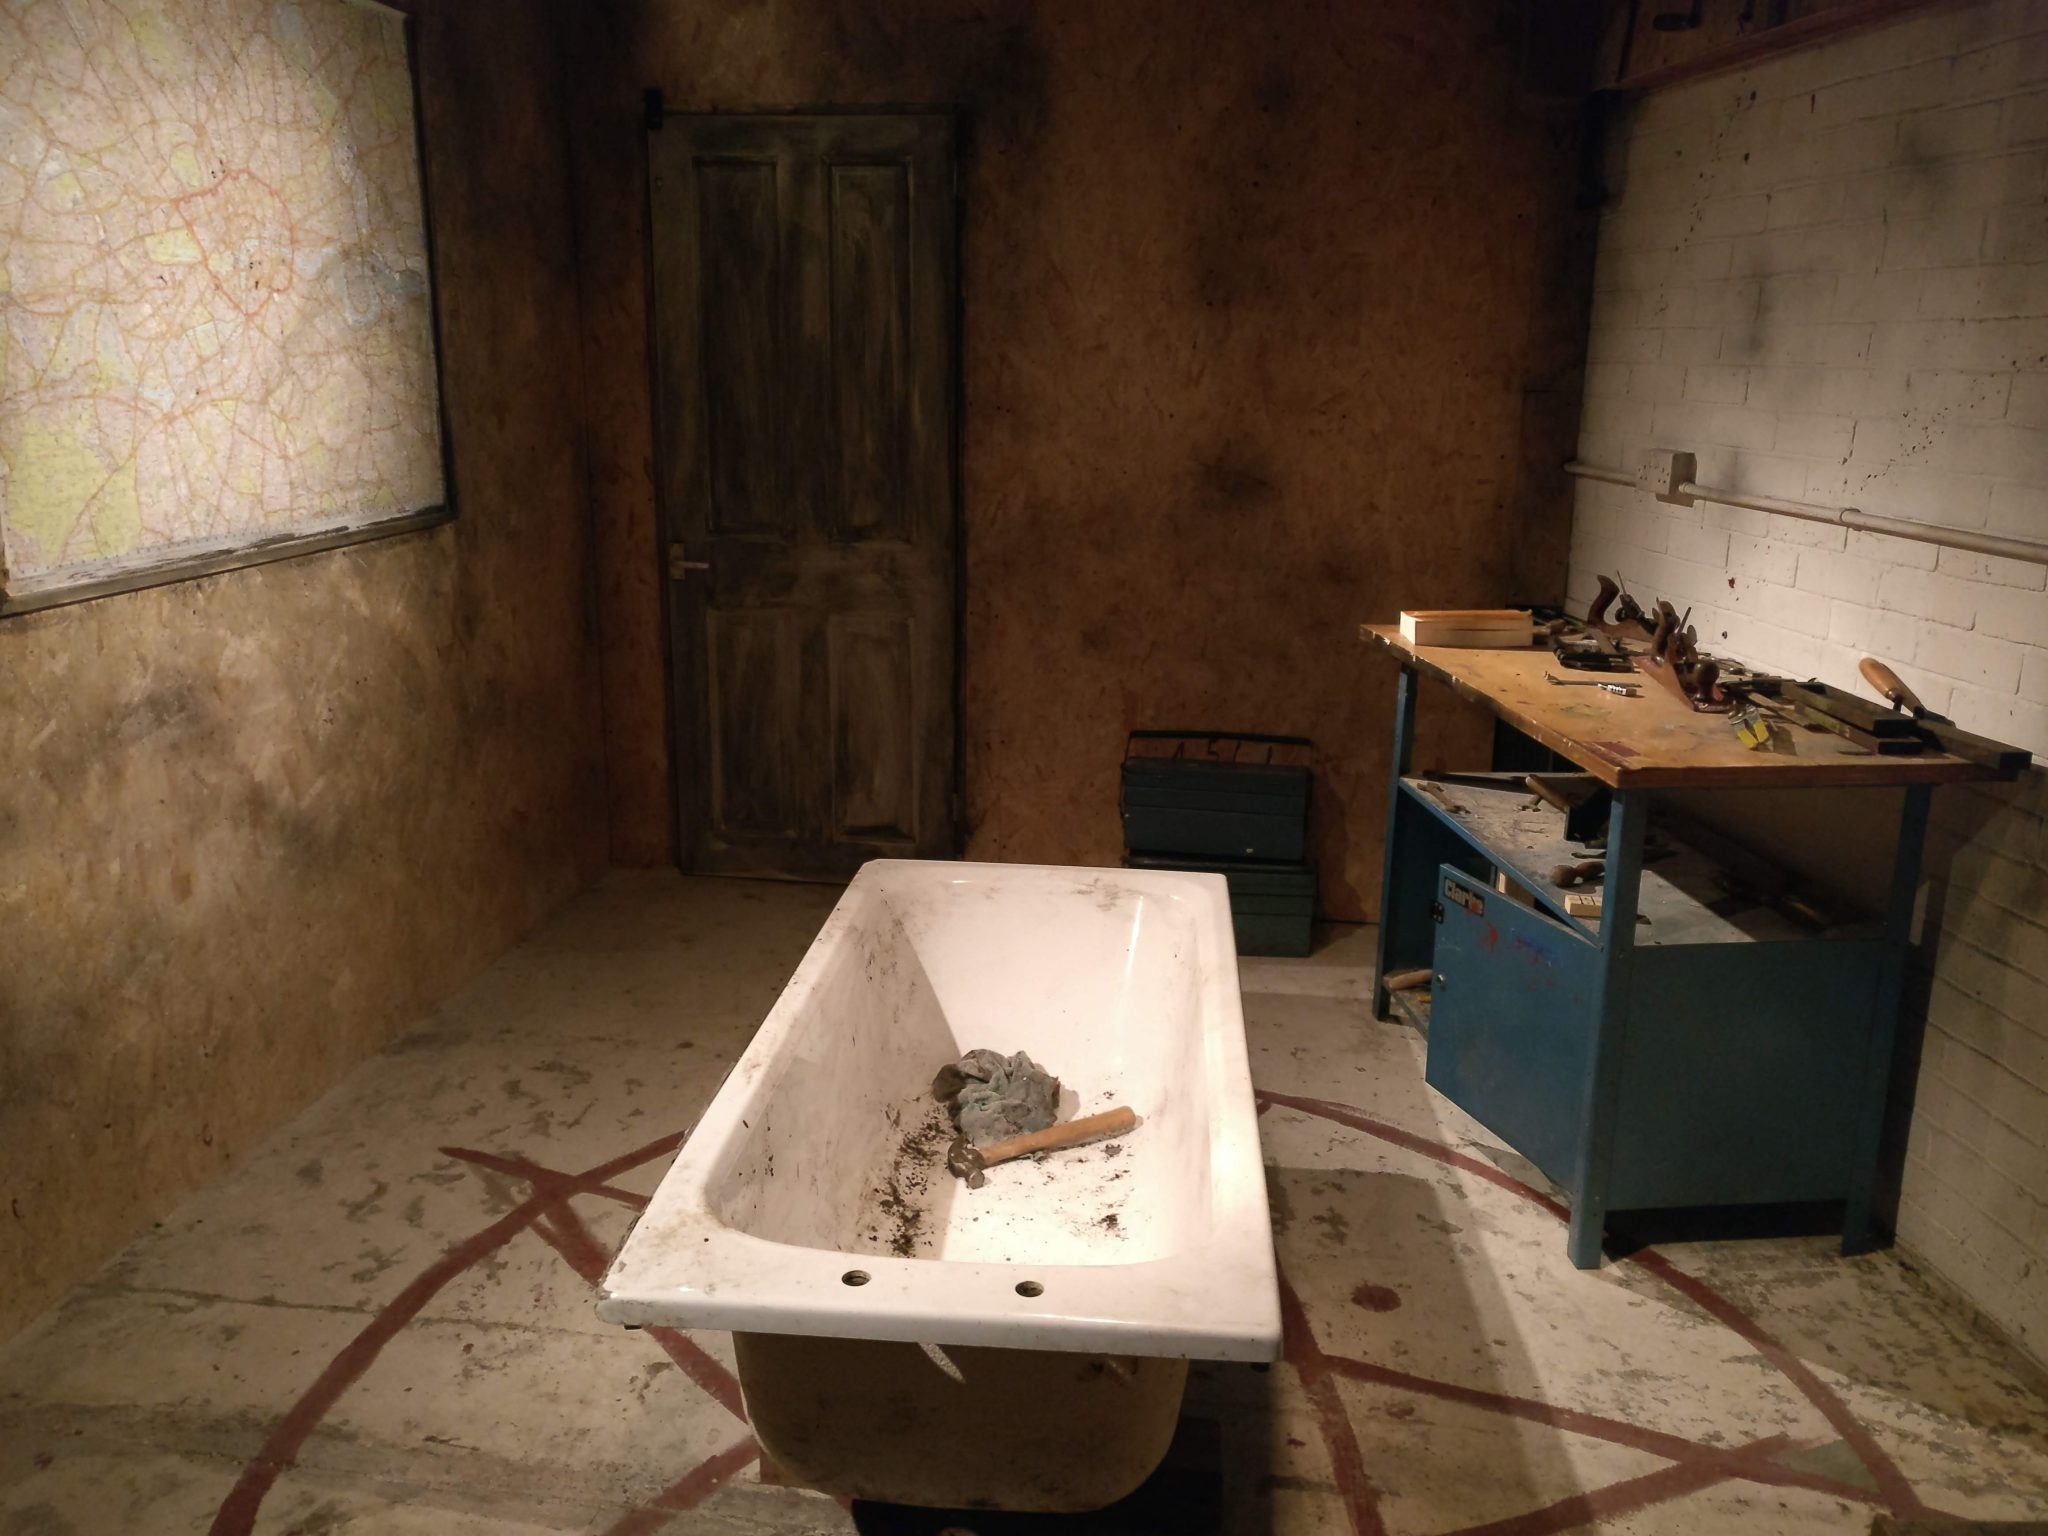 Inside the Corpsewood Killer room